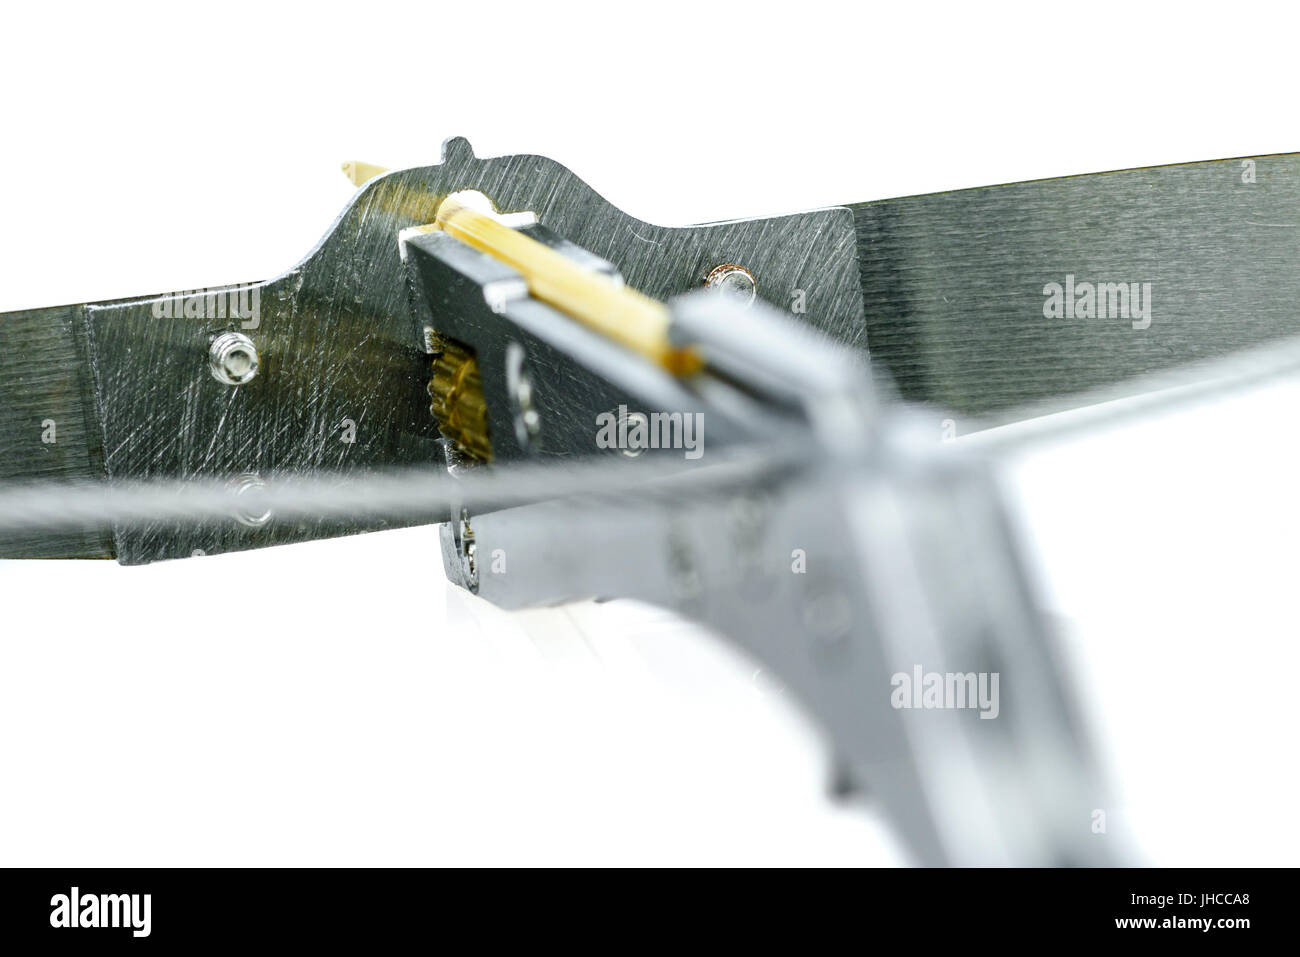 Toothpick catapult, a dangerous steel 'toy' from China which fires toothpicks with enough force to break - Stock Image